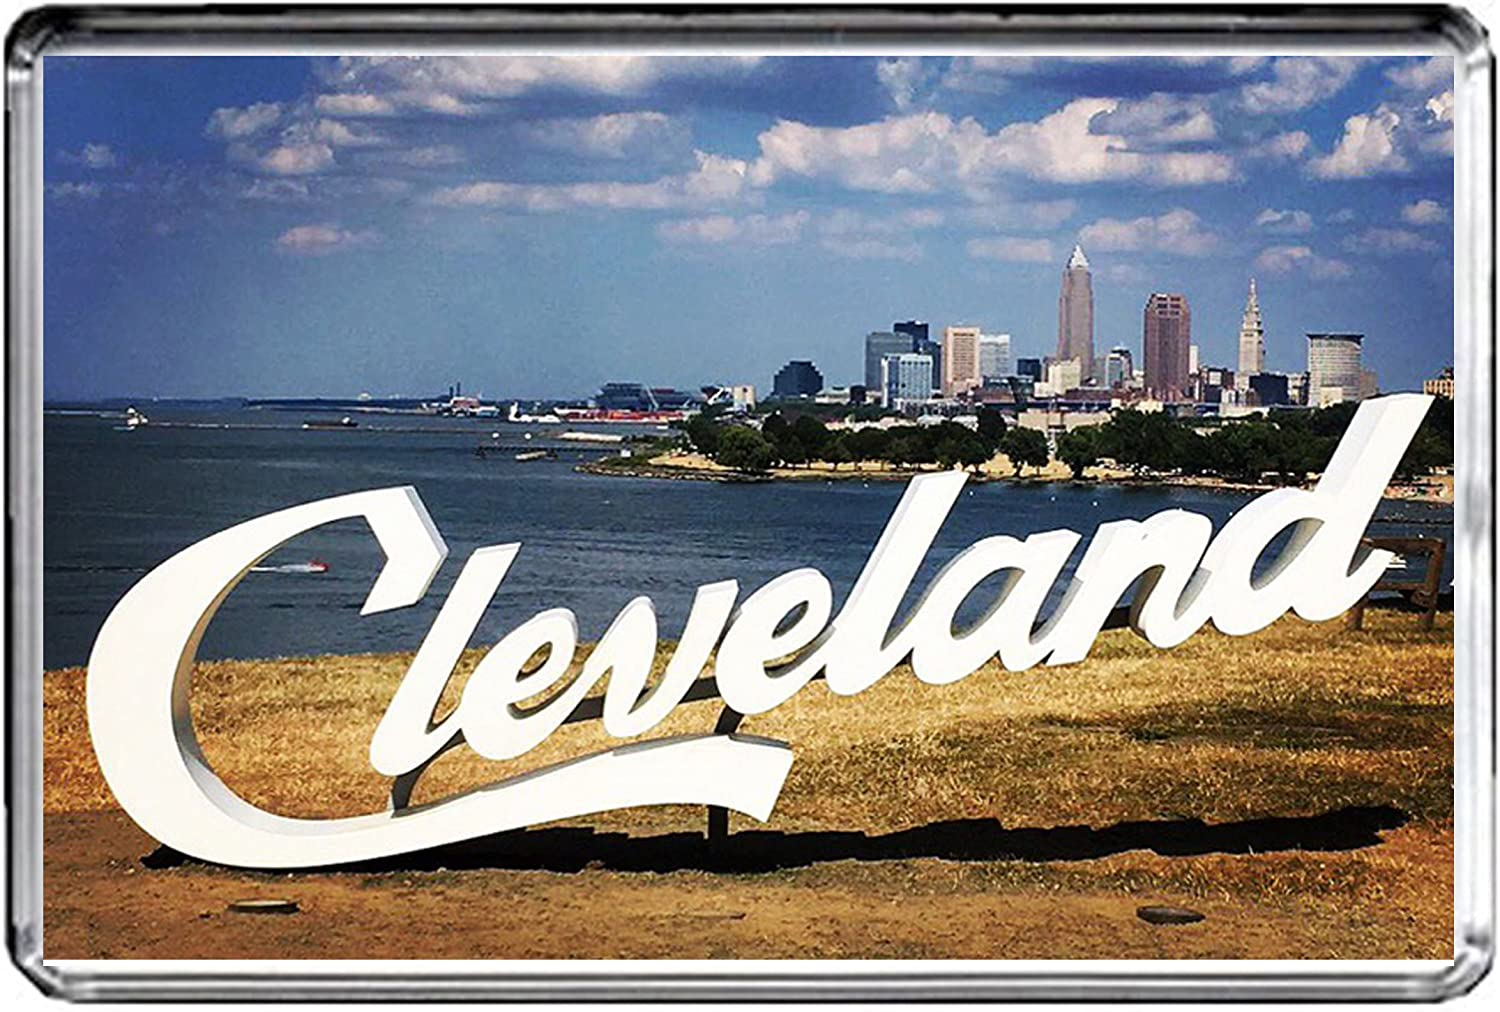 USA E499 Cleveland Fridge Magnet Travel Photo Refrigerator Magnet